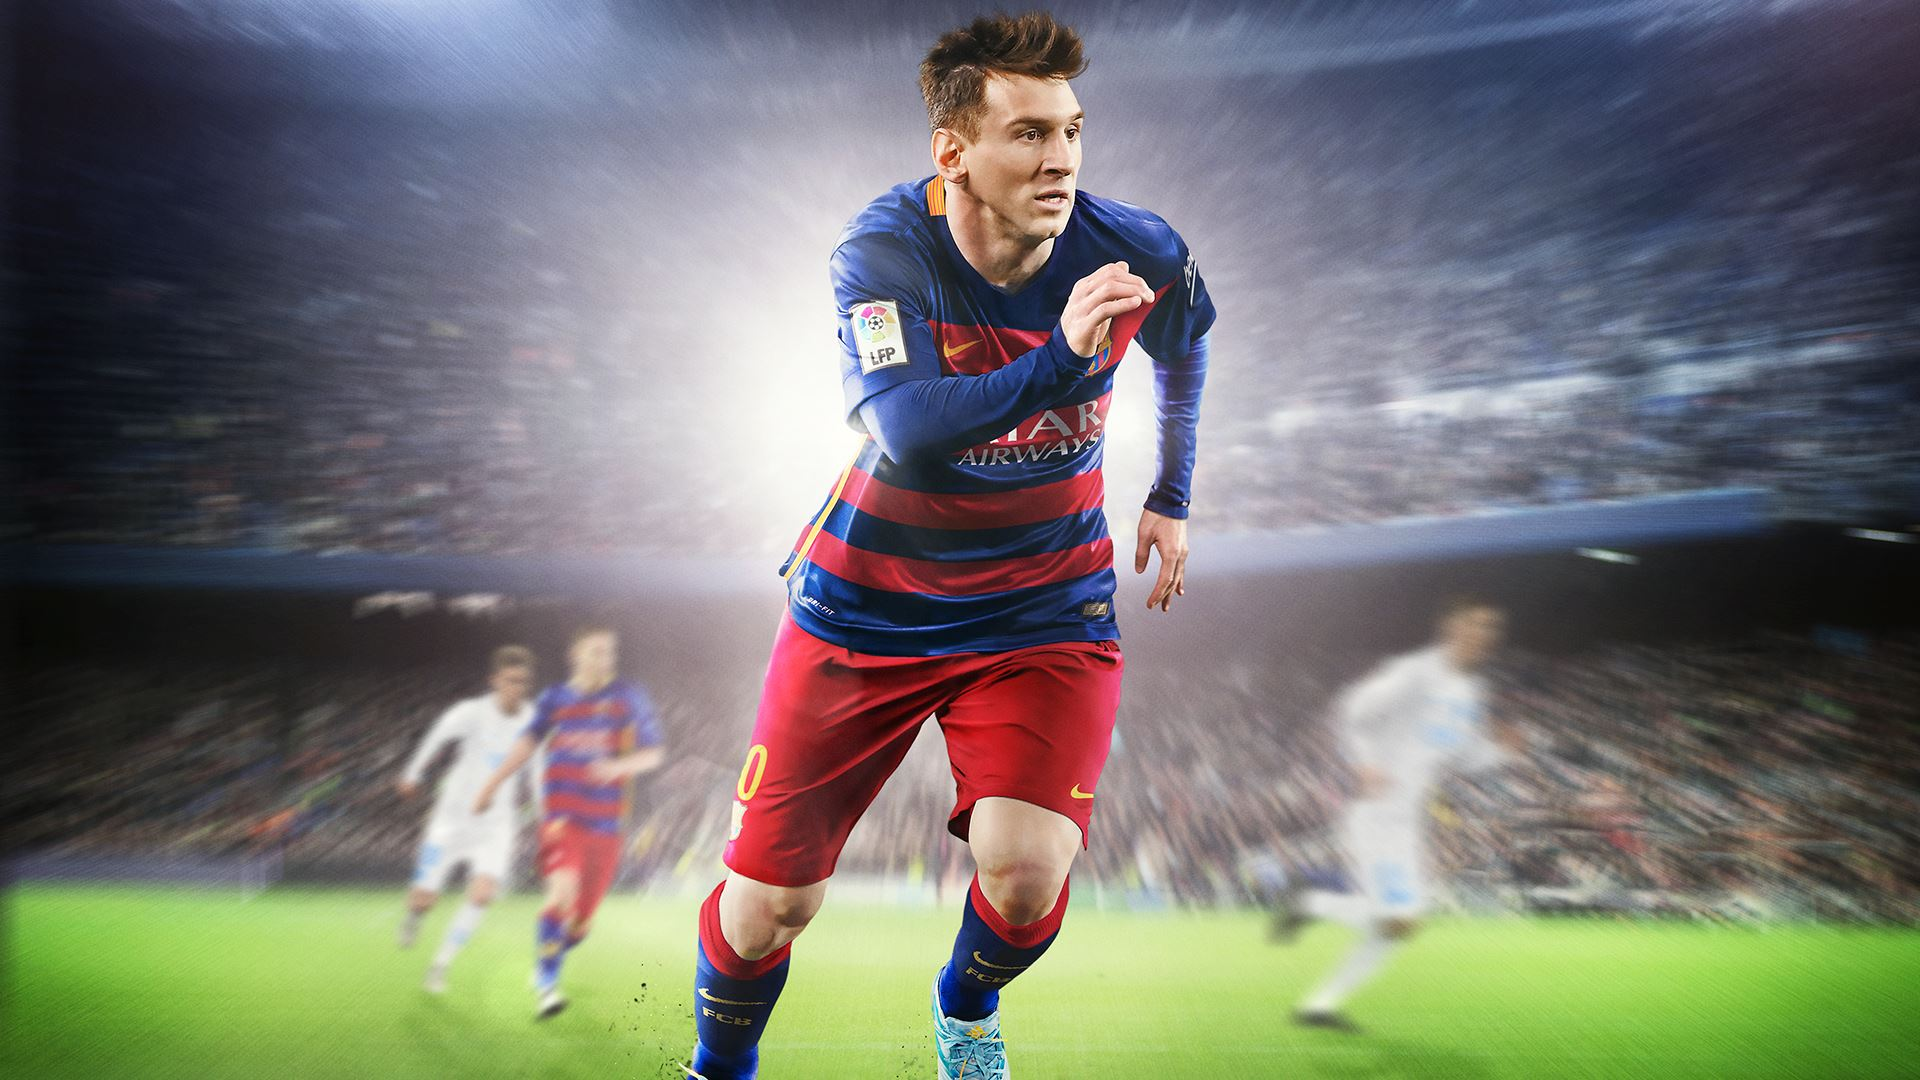 fifa 16 hd wallpapers full hd pictures